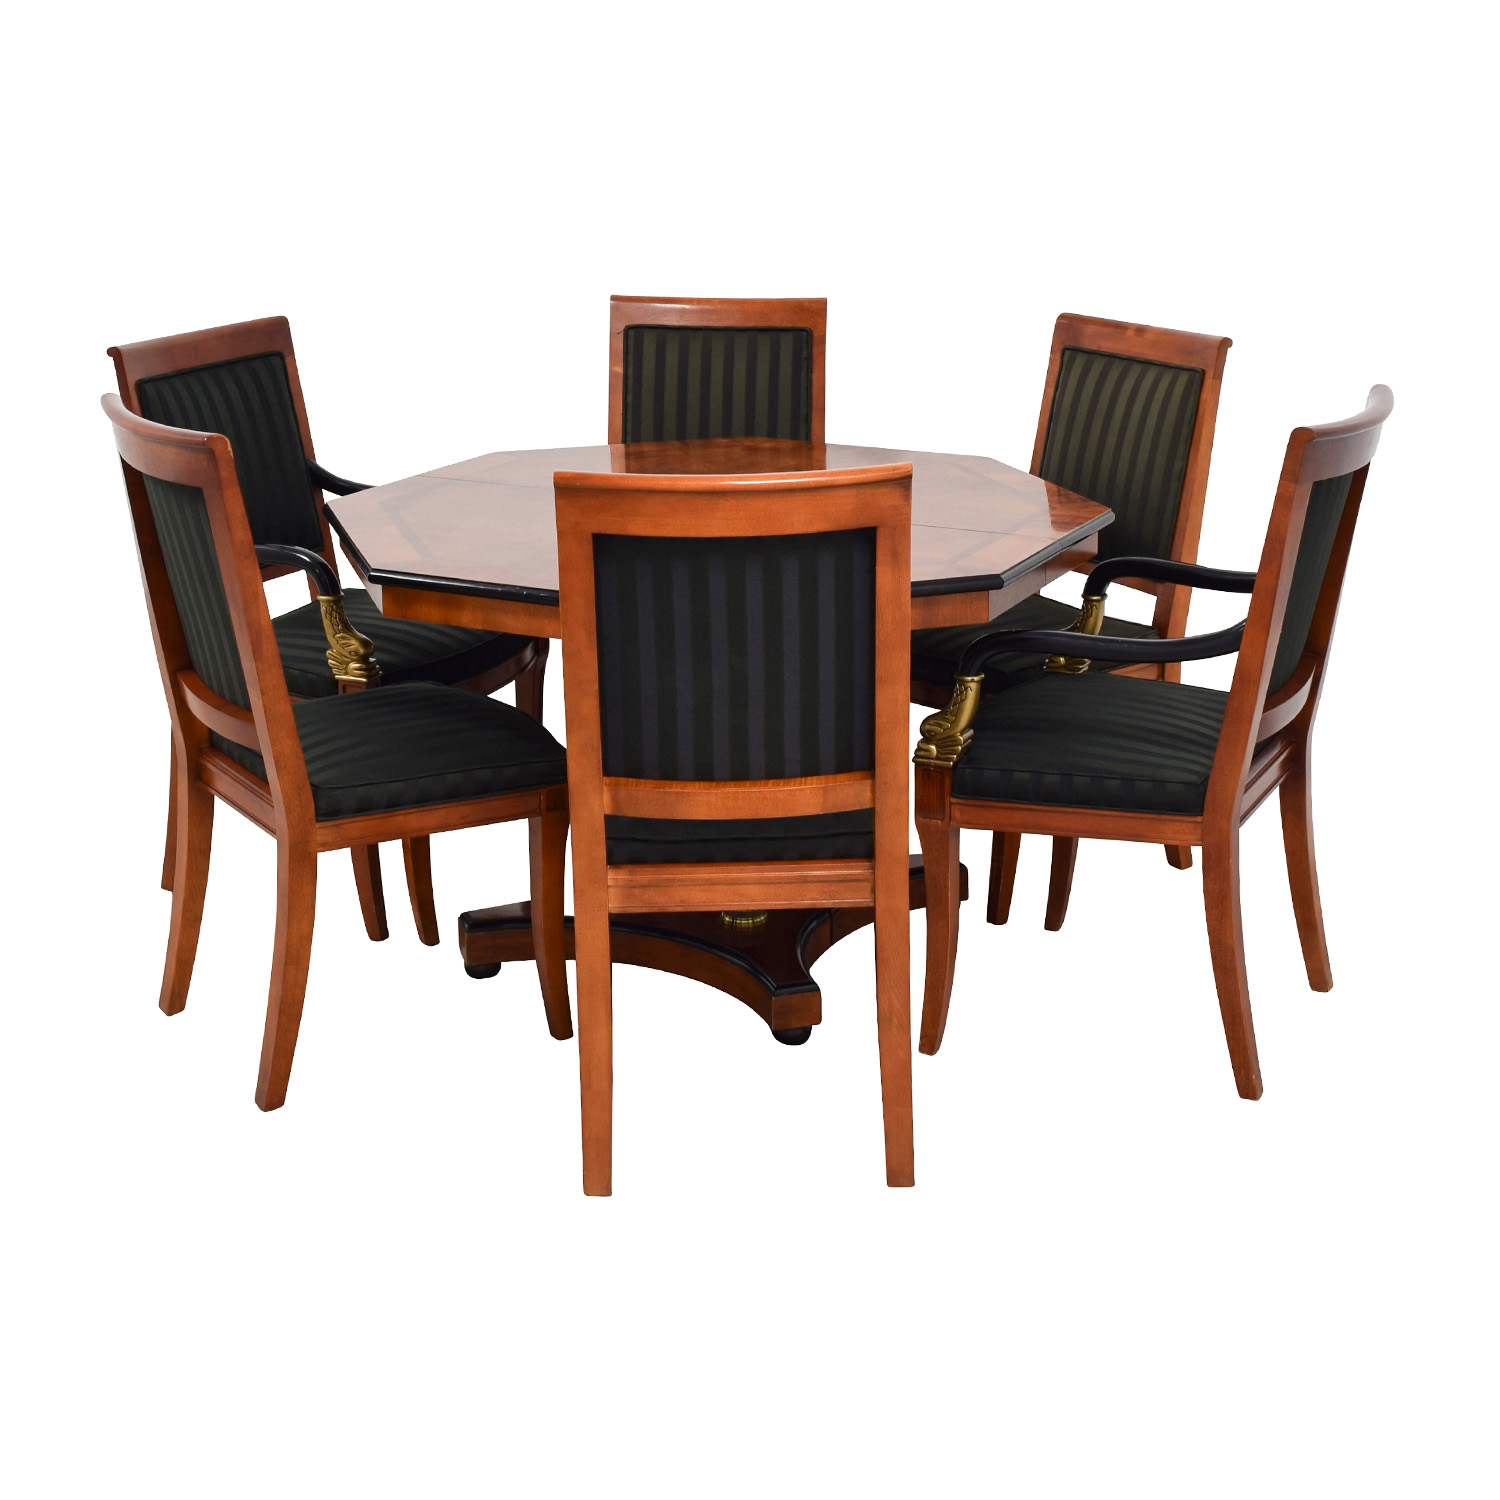 89 off vintage dining table set with gold accent tables. Black Bedroom Furniture Sets. Home Design Ideas